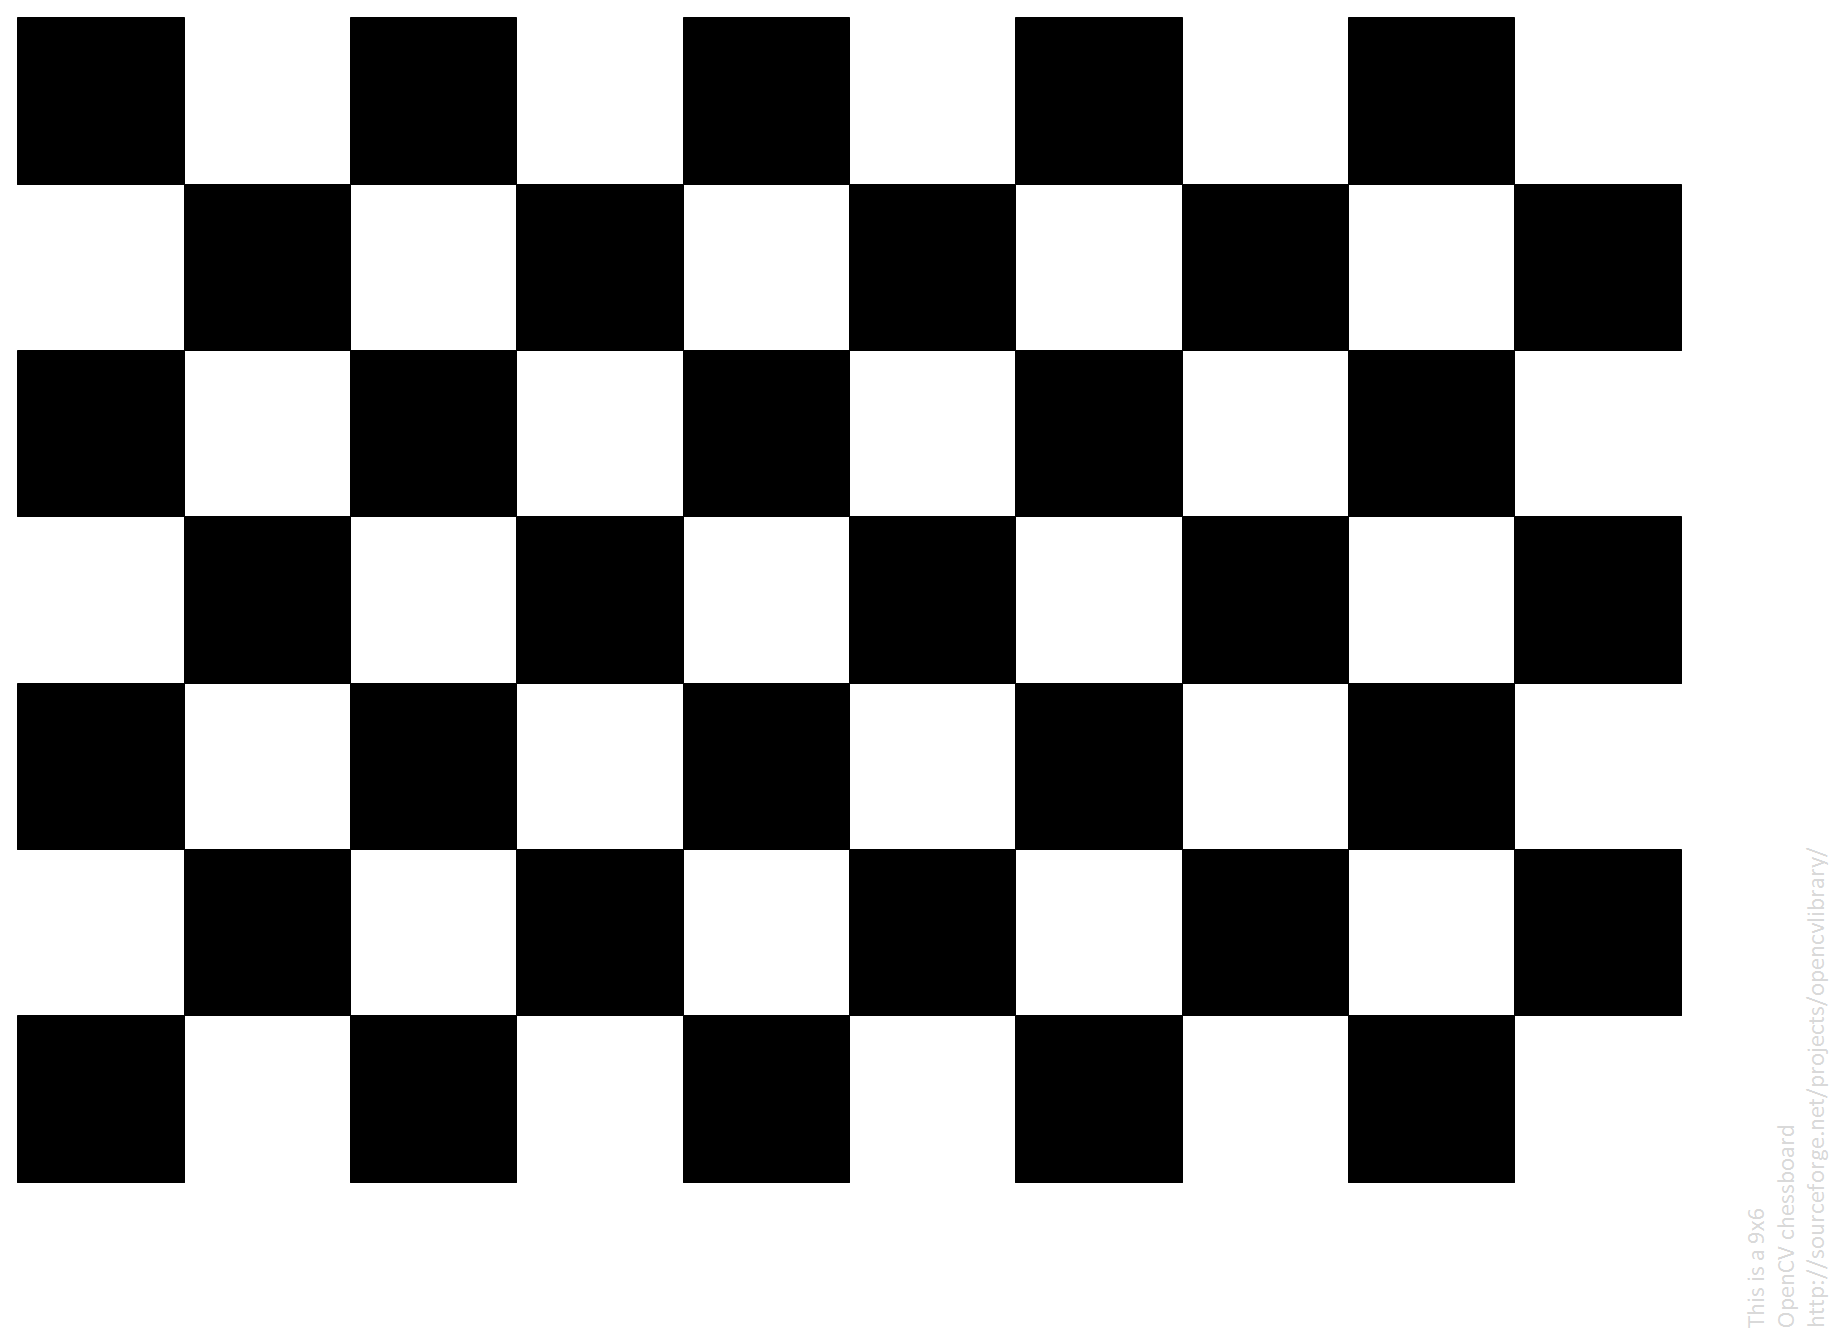 Racing Checkered Flag >> Camera calibration: Pattern.png dpi? - OpenCV Q&A Forum